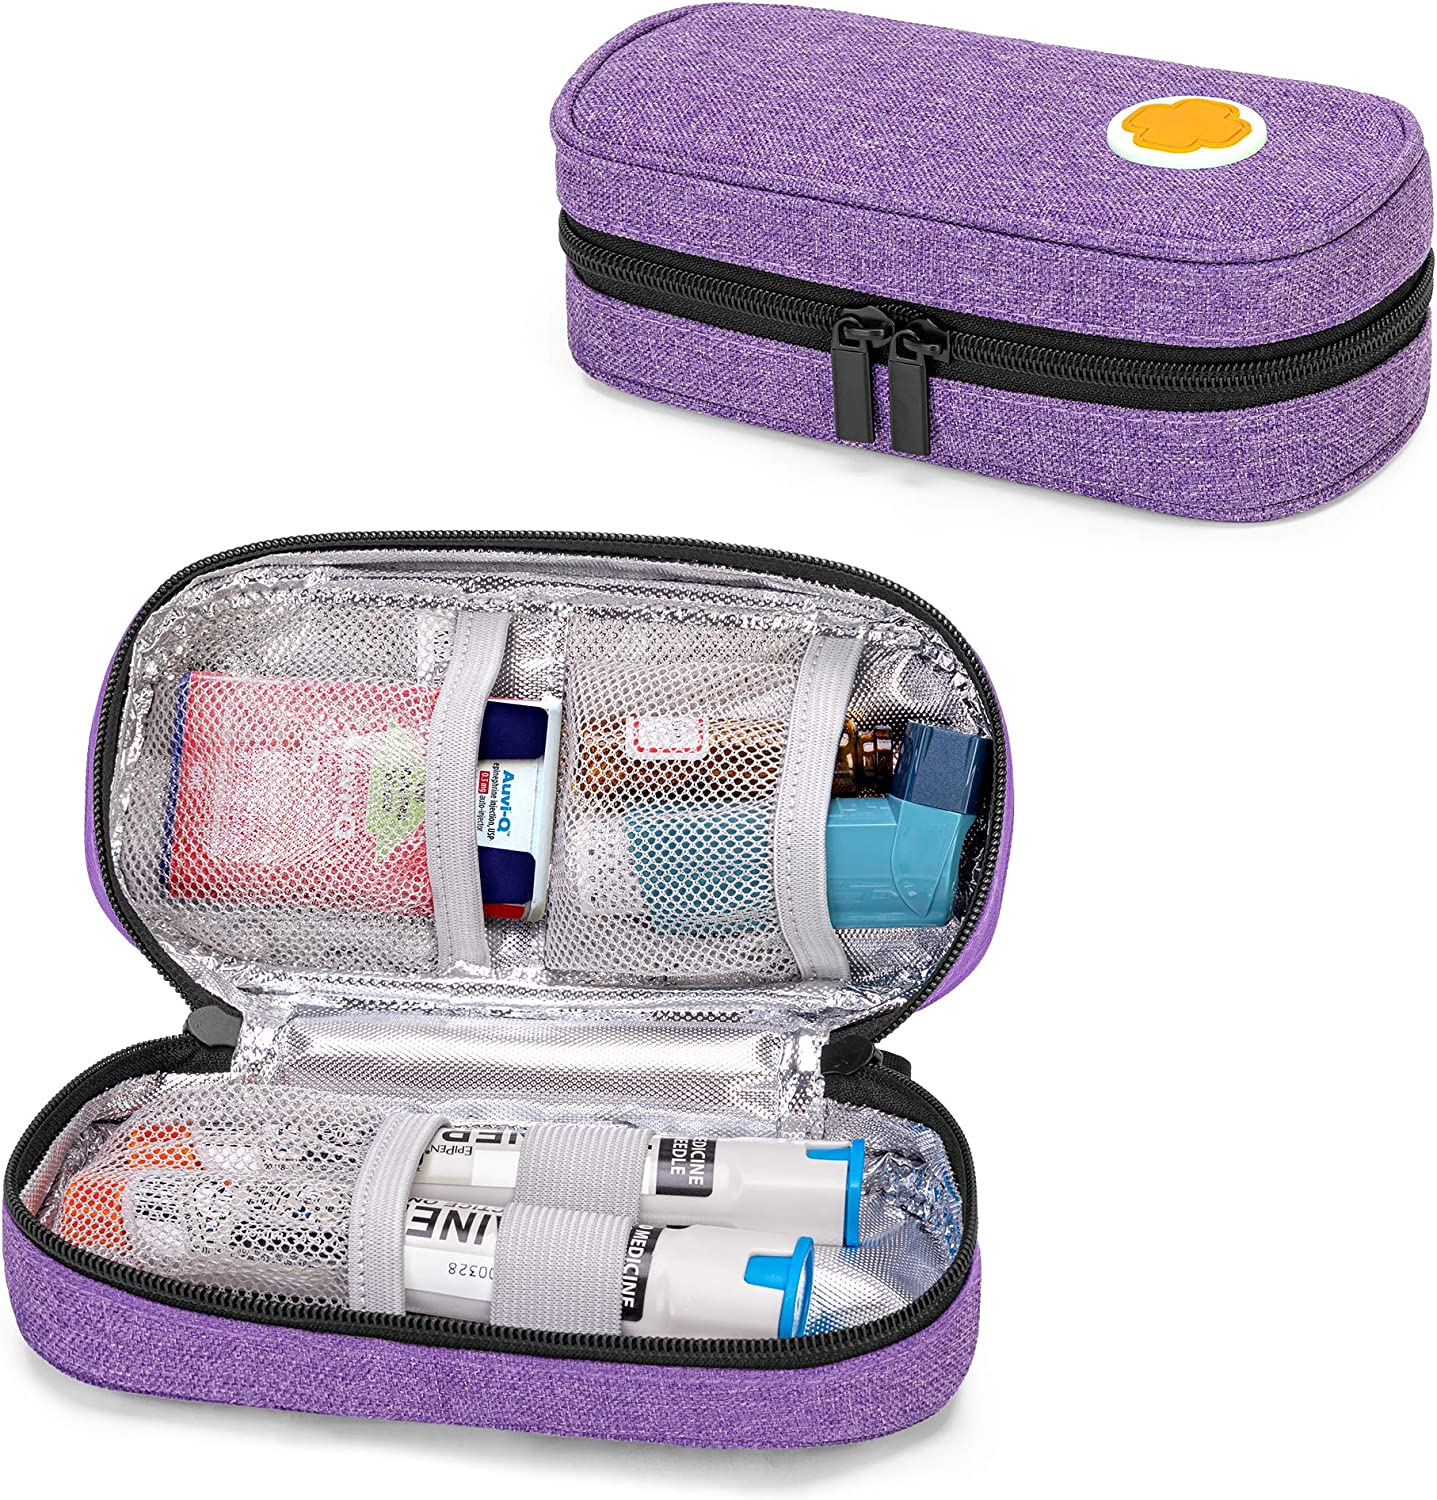 CURMIO Epipen Carrying Case for Max 49% OFF Adult Super beauty product restock quality top! Portable and Kid Medicine